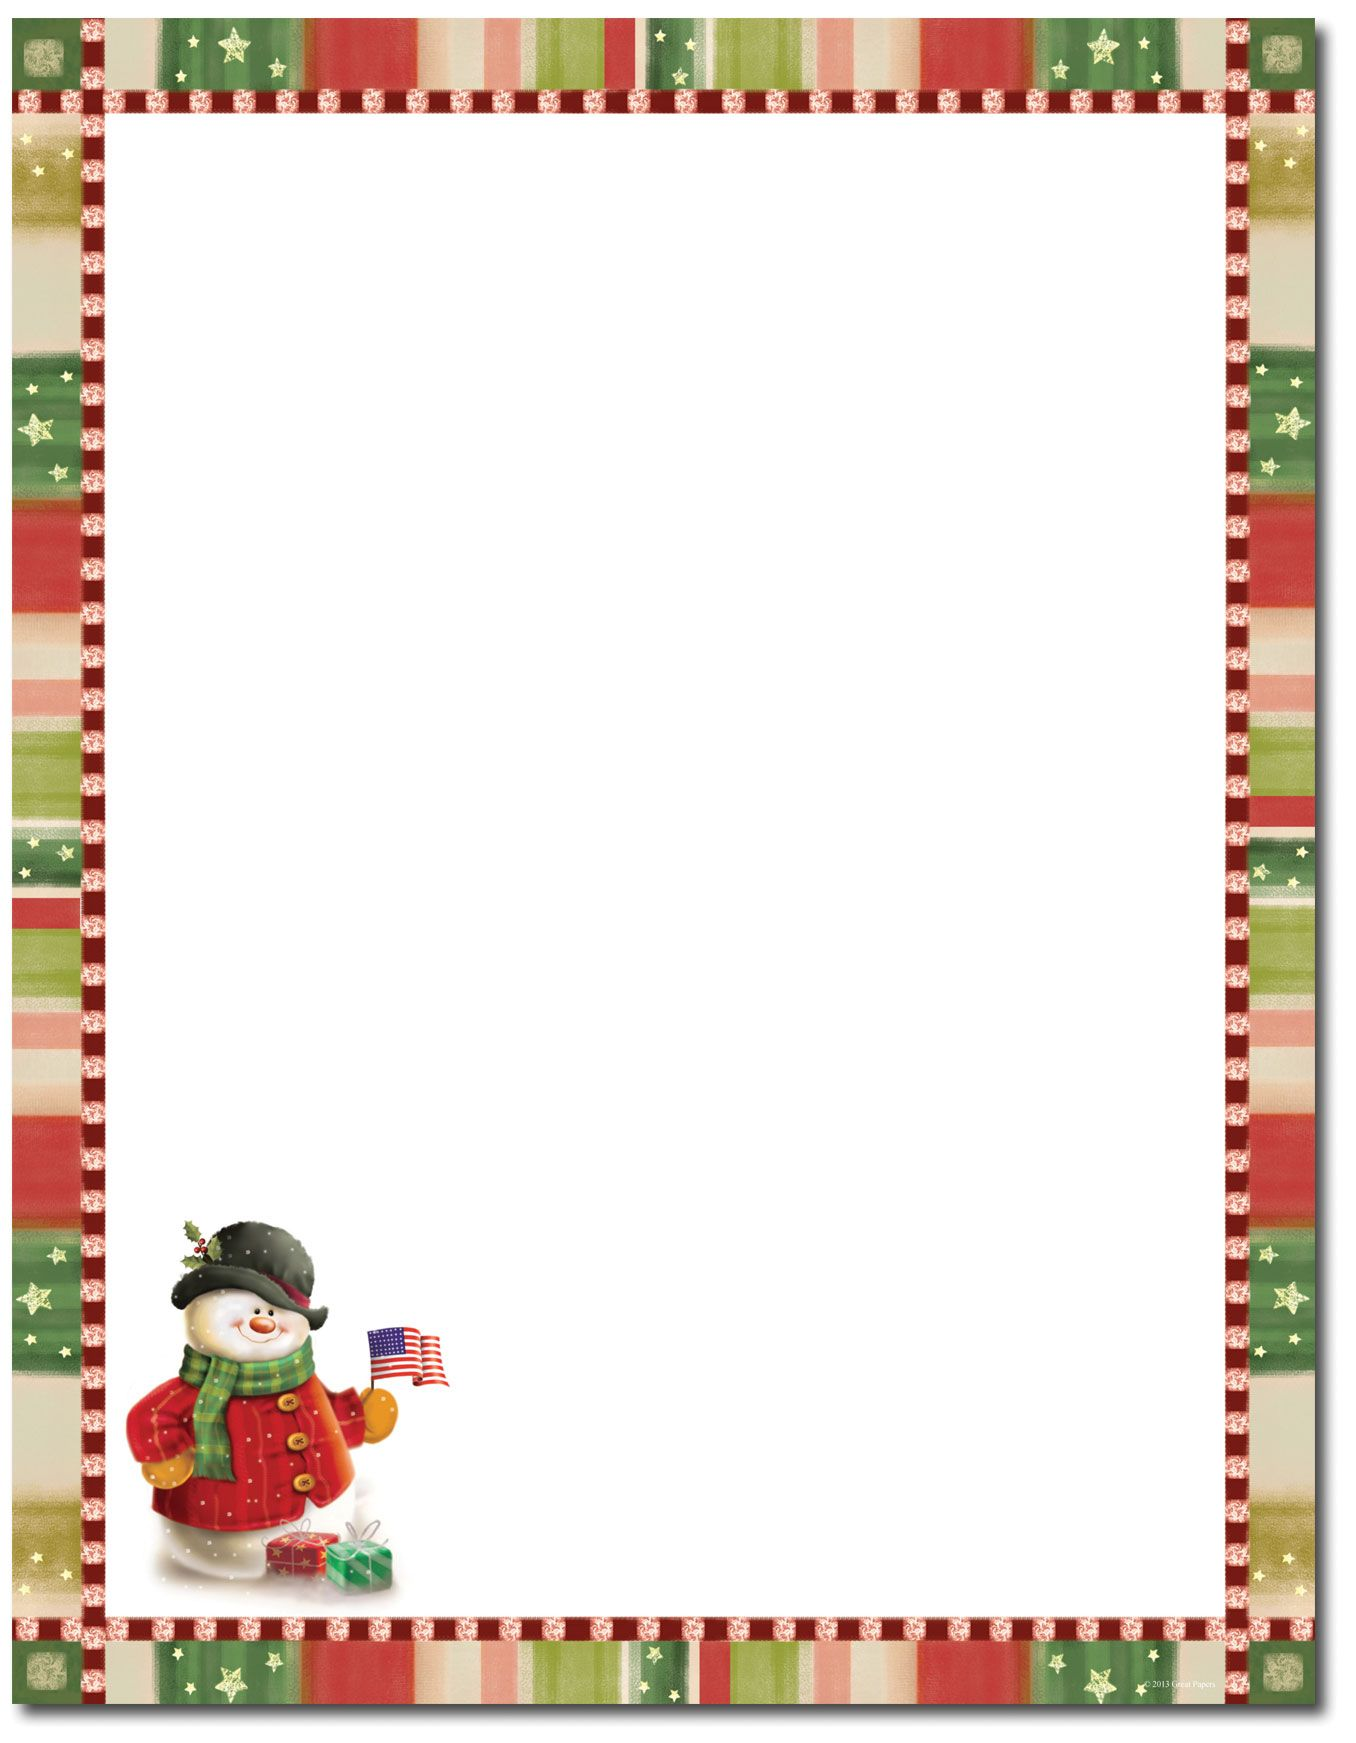 Patriotic Snowman Letterhead Christmas stationery